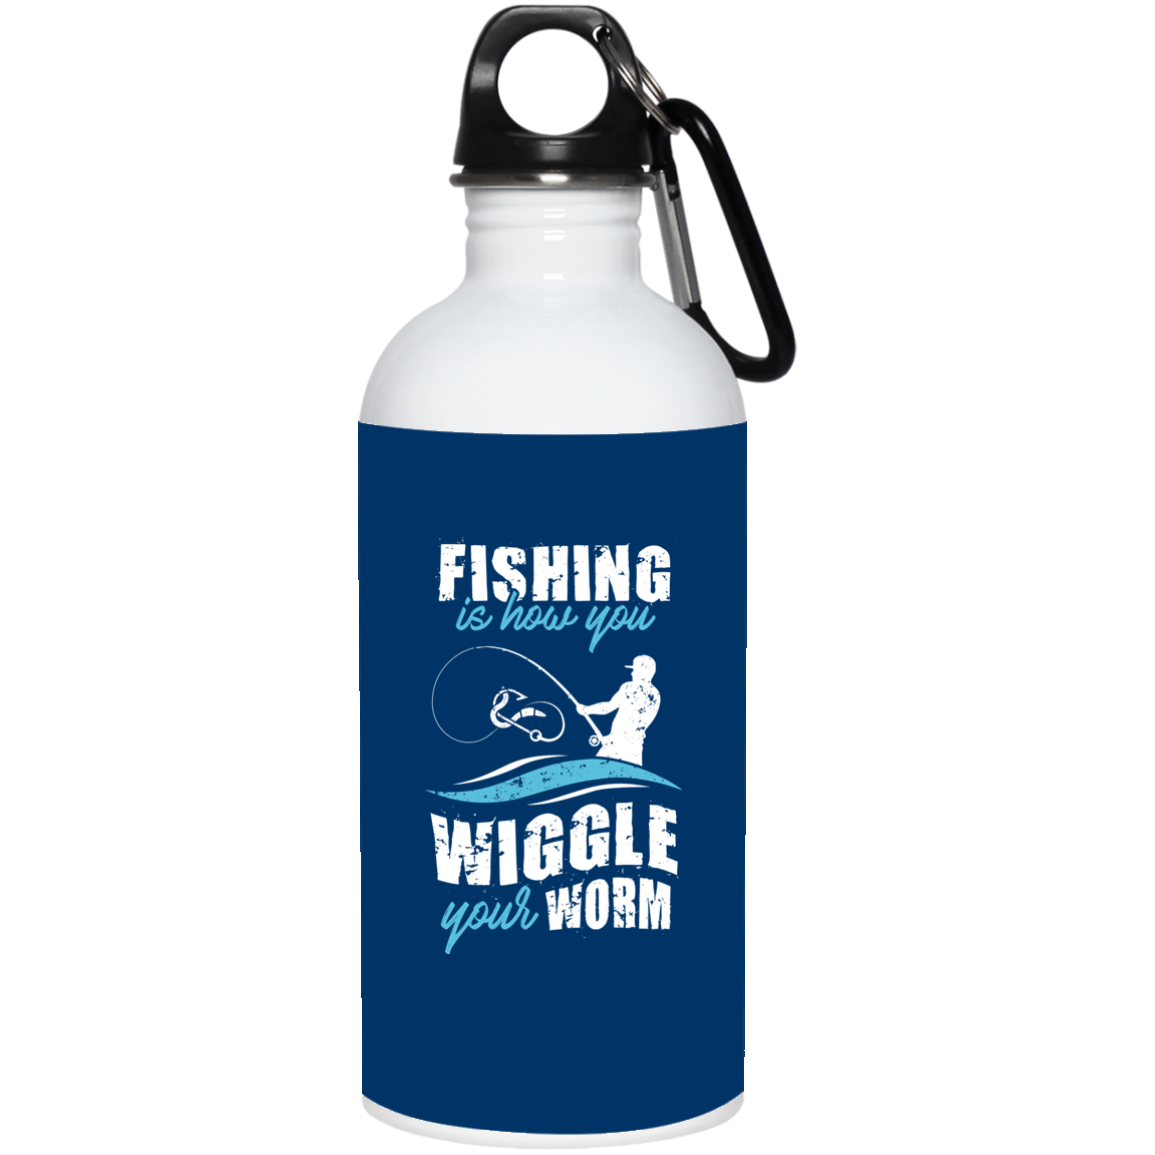 Transparent worms water bottle. Fishing is how you